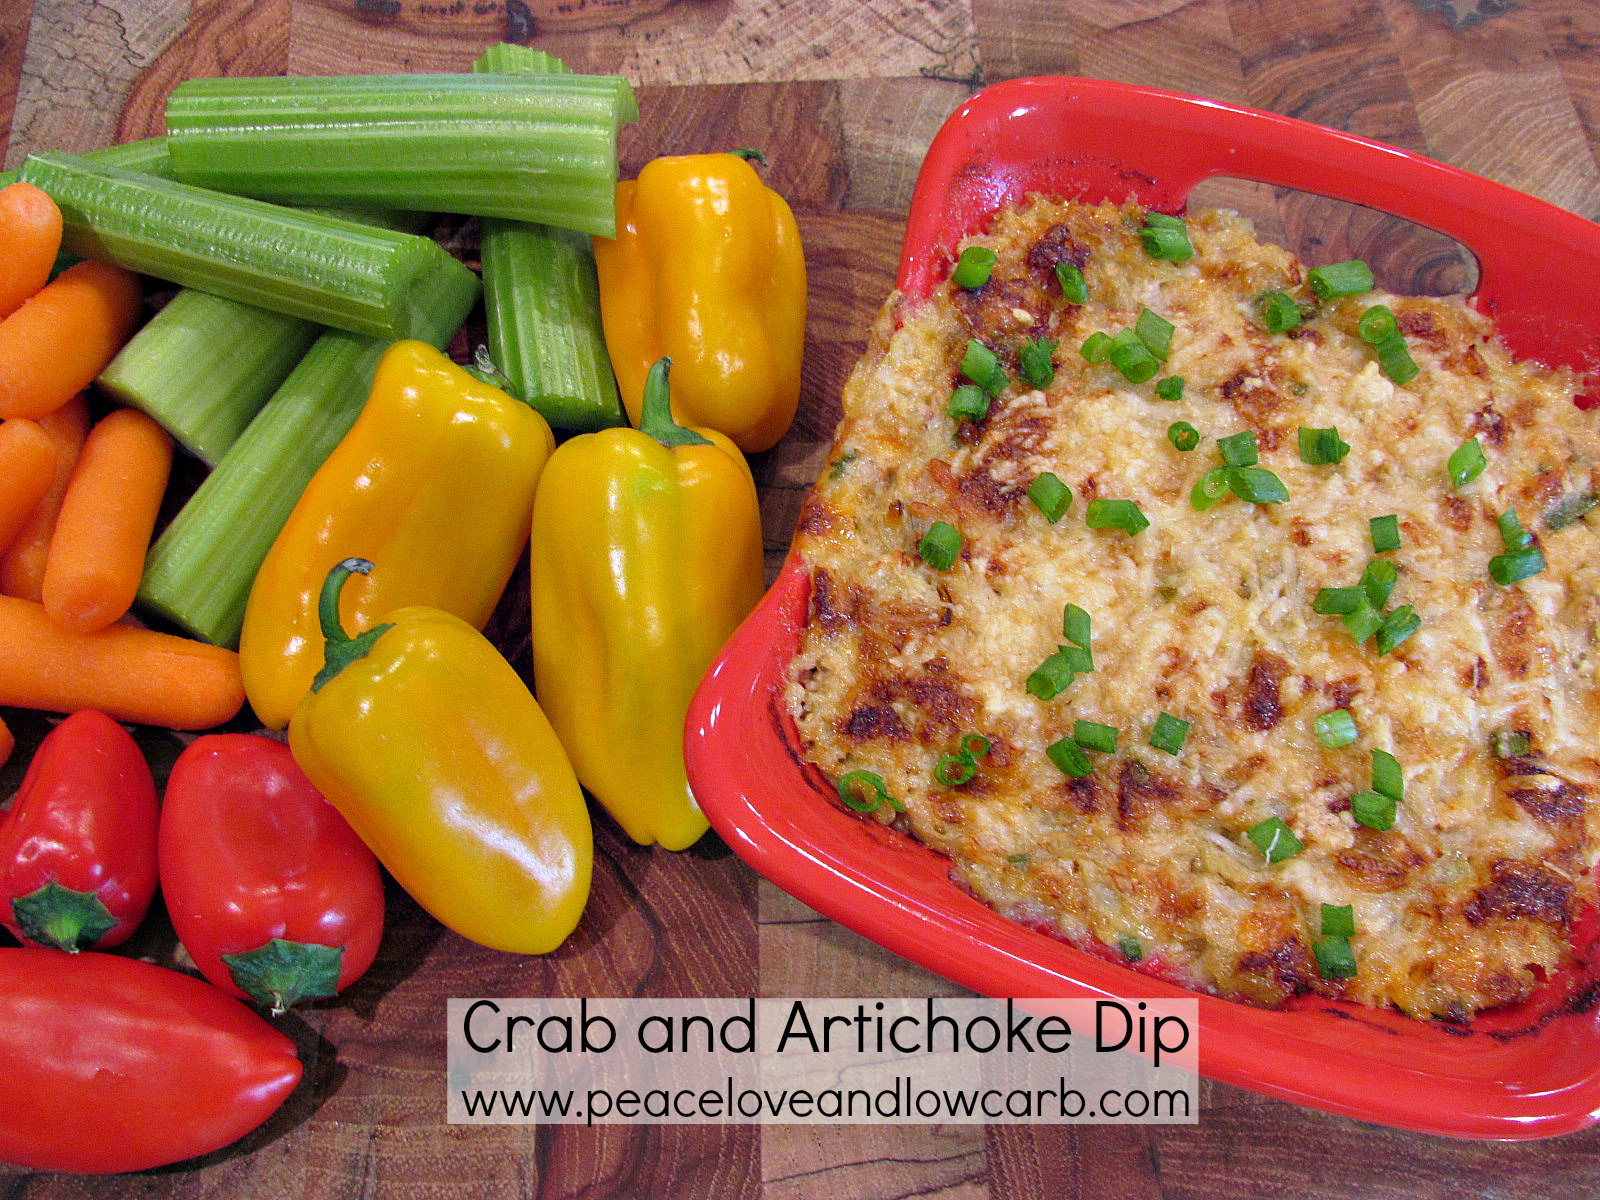 Crab and Artichoke Dip – Low Carb, Gluten Free